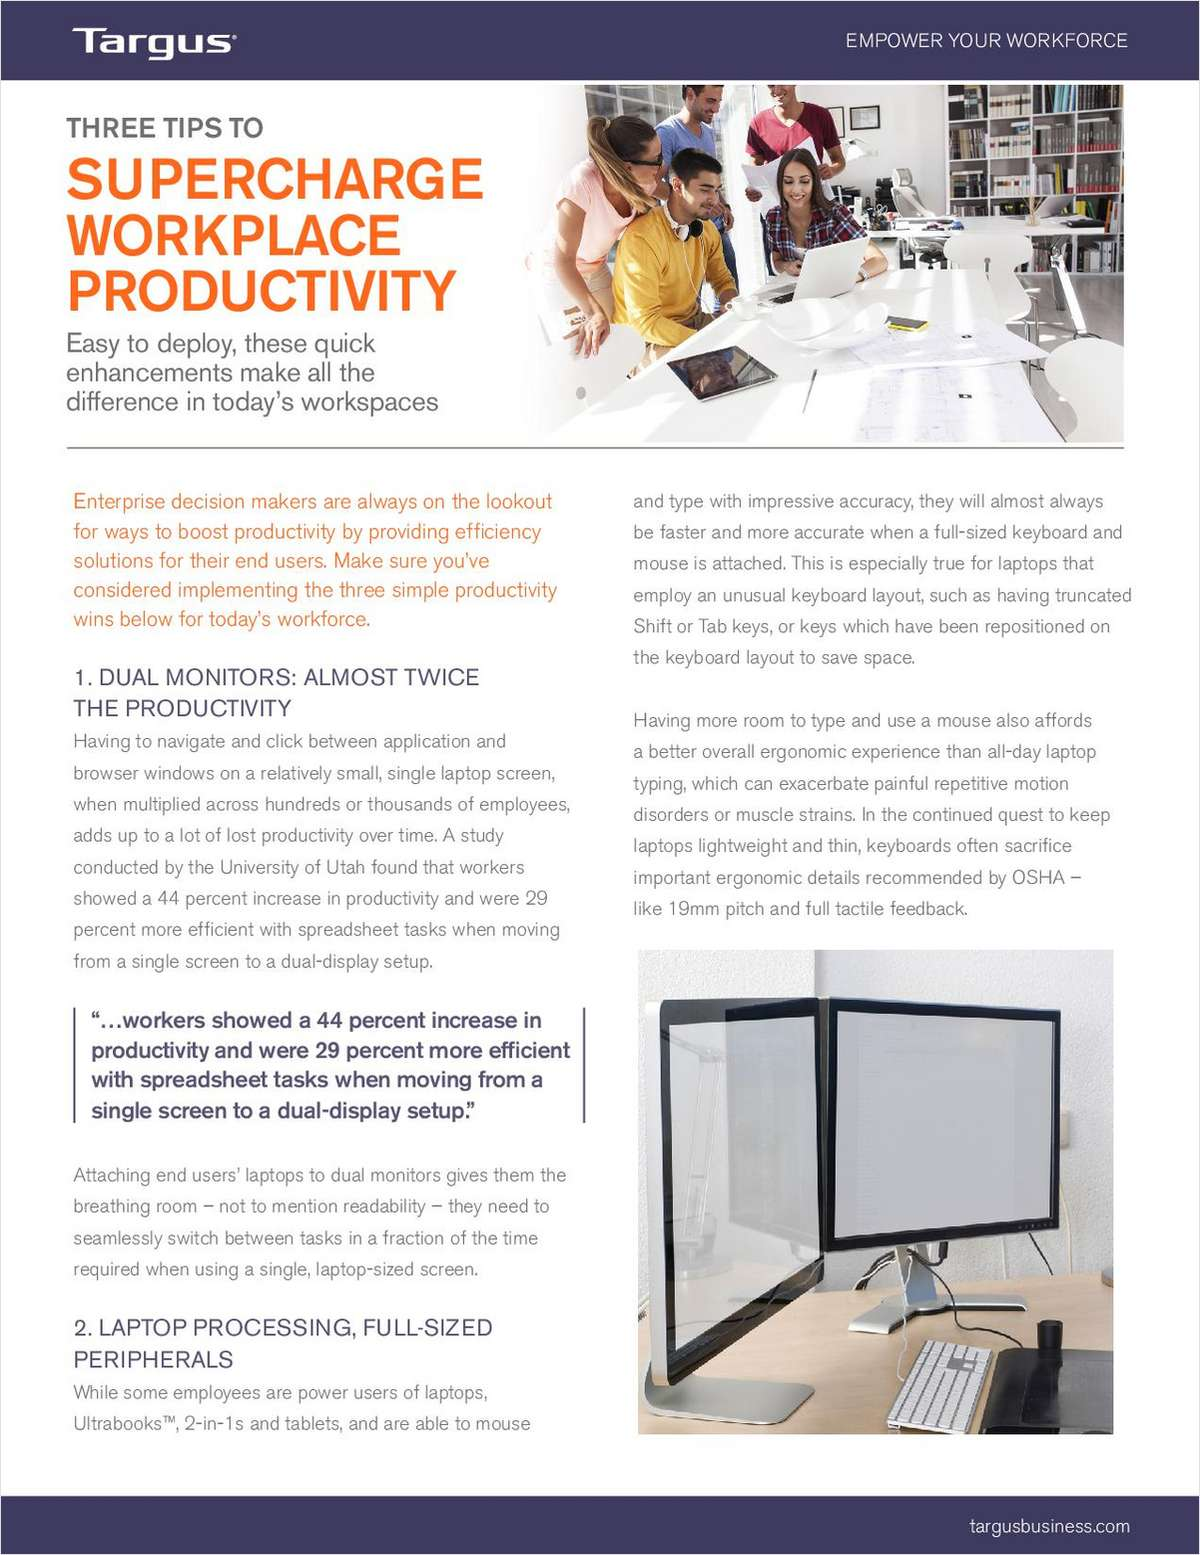 Top Three Tips to Supercharge Workplace Productivity